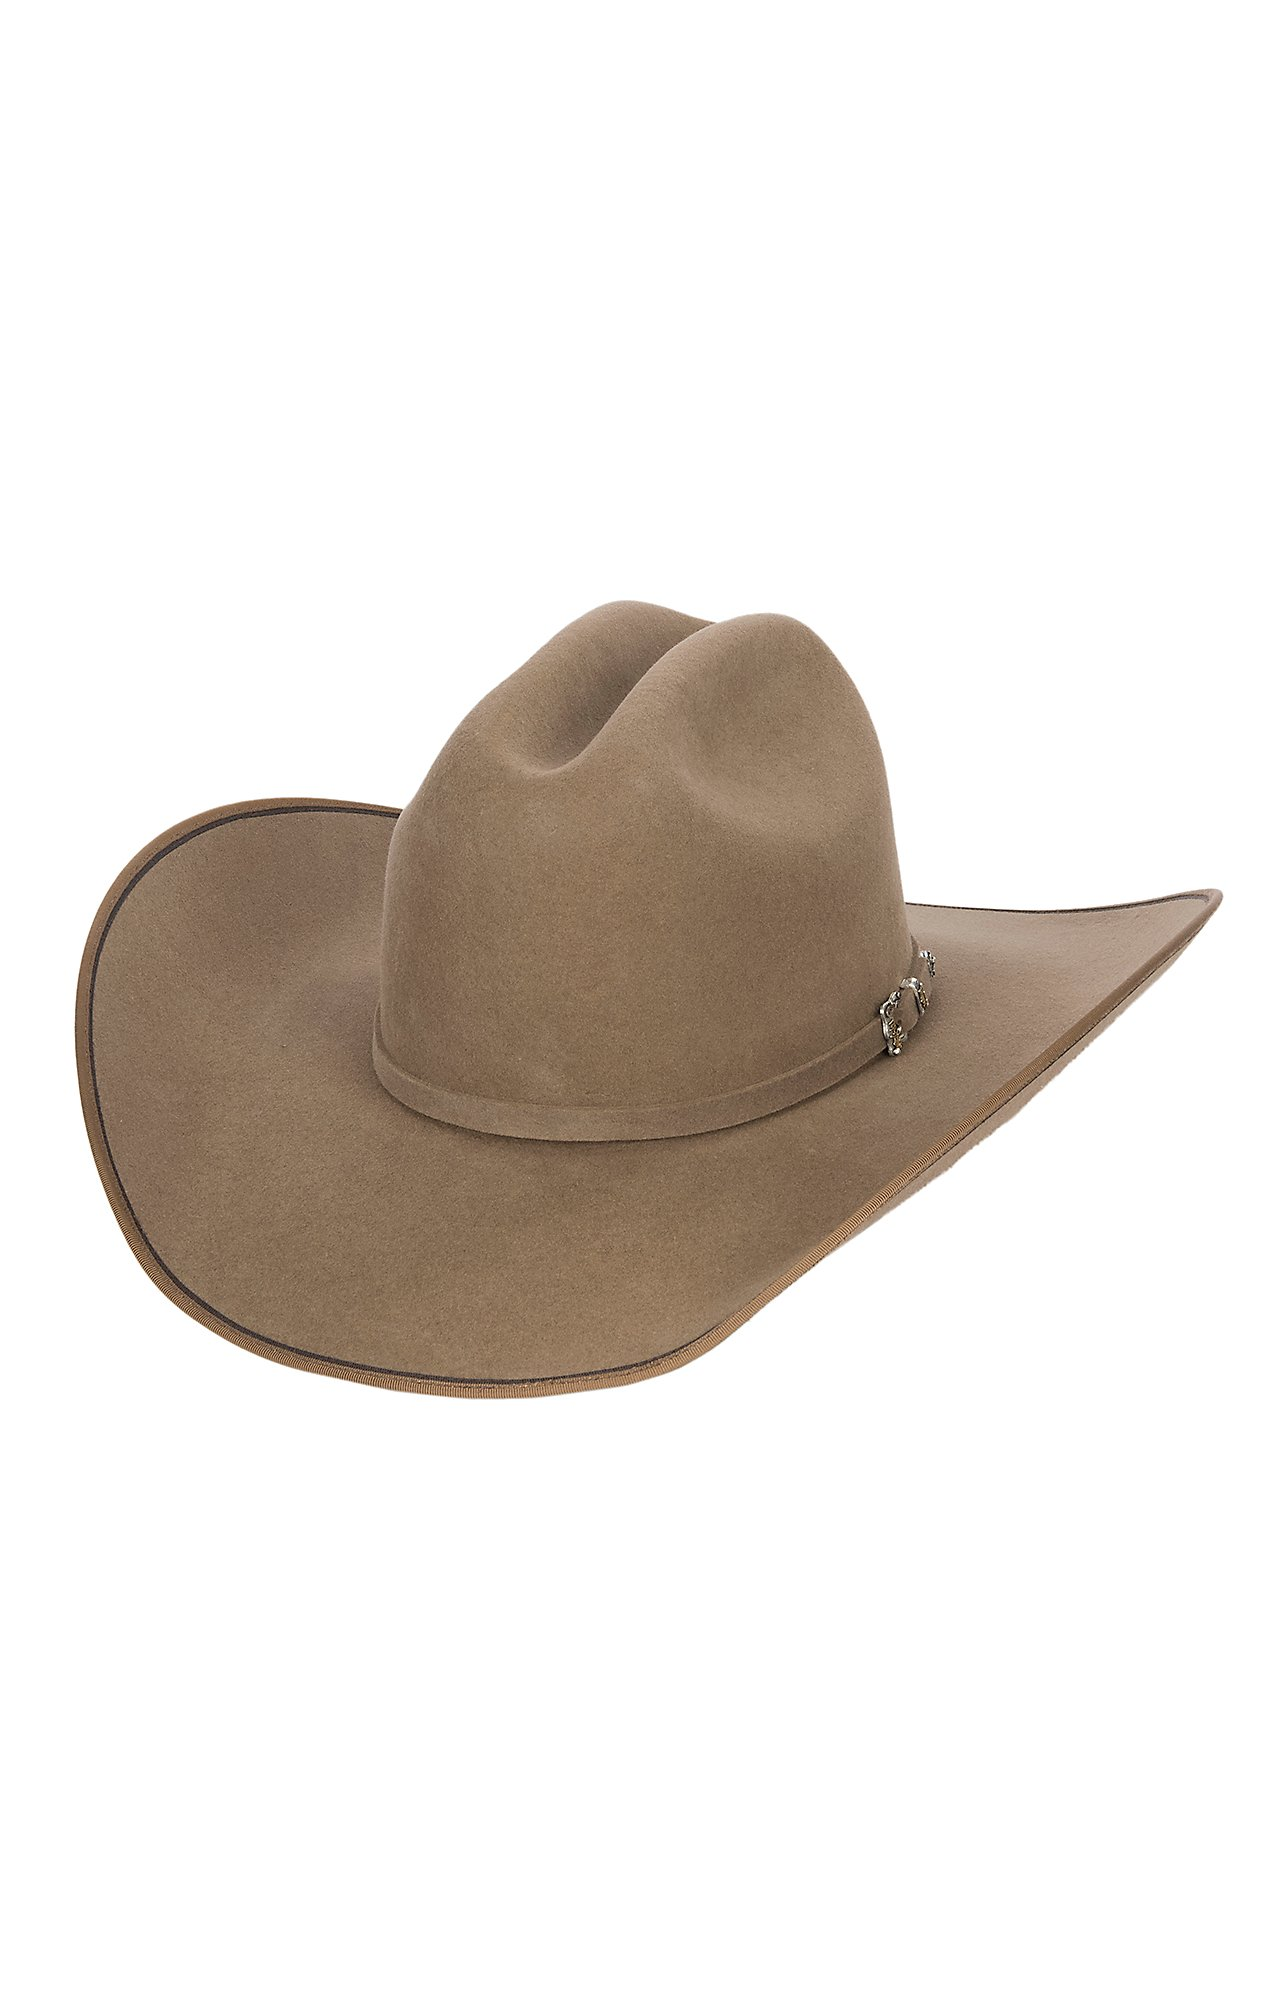 Justin 7X Pecan Hooked with Two Tone Edge Felt Cowboy Hat f0f731edfead